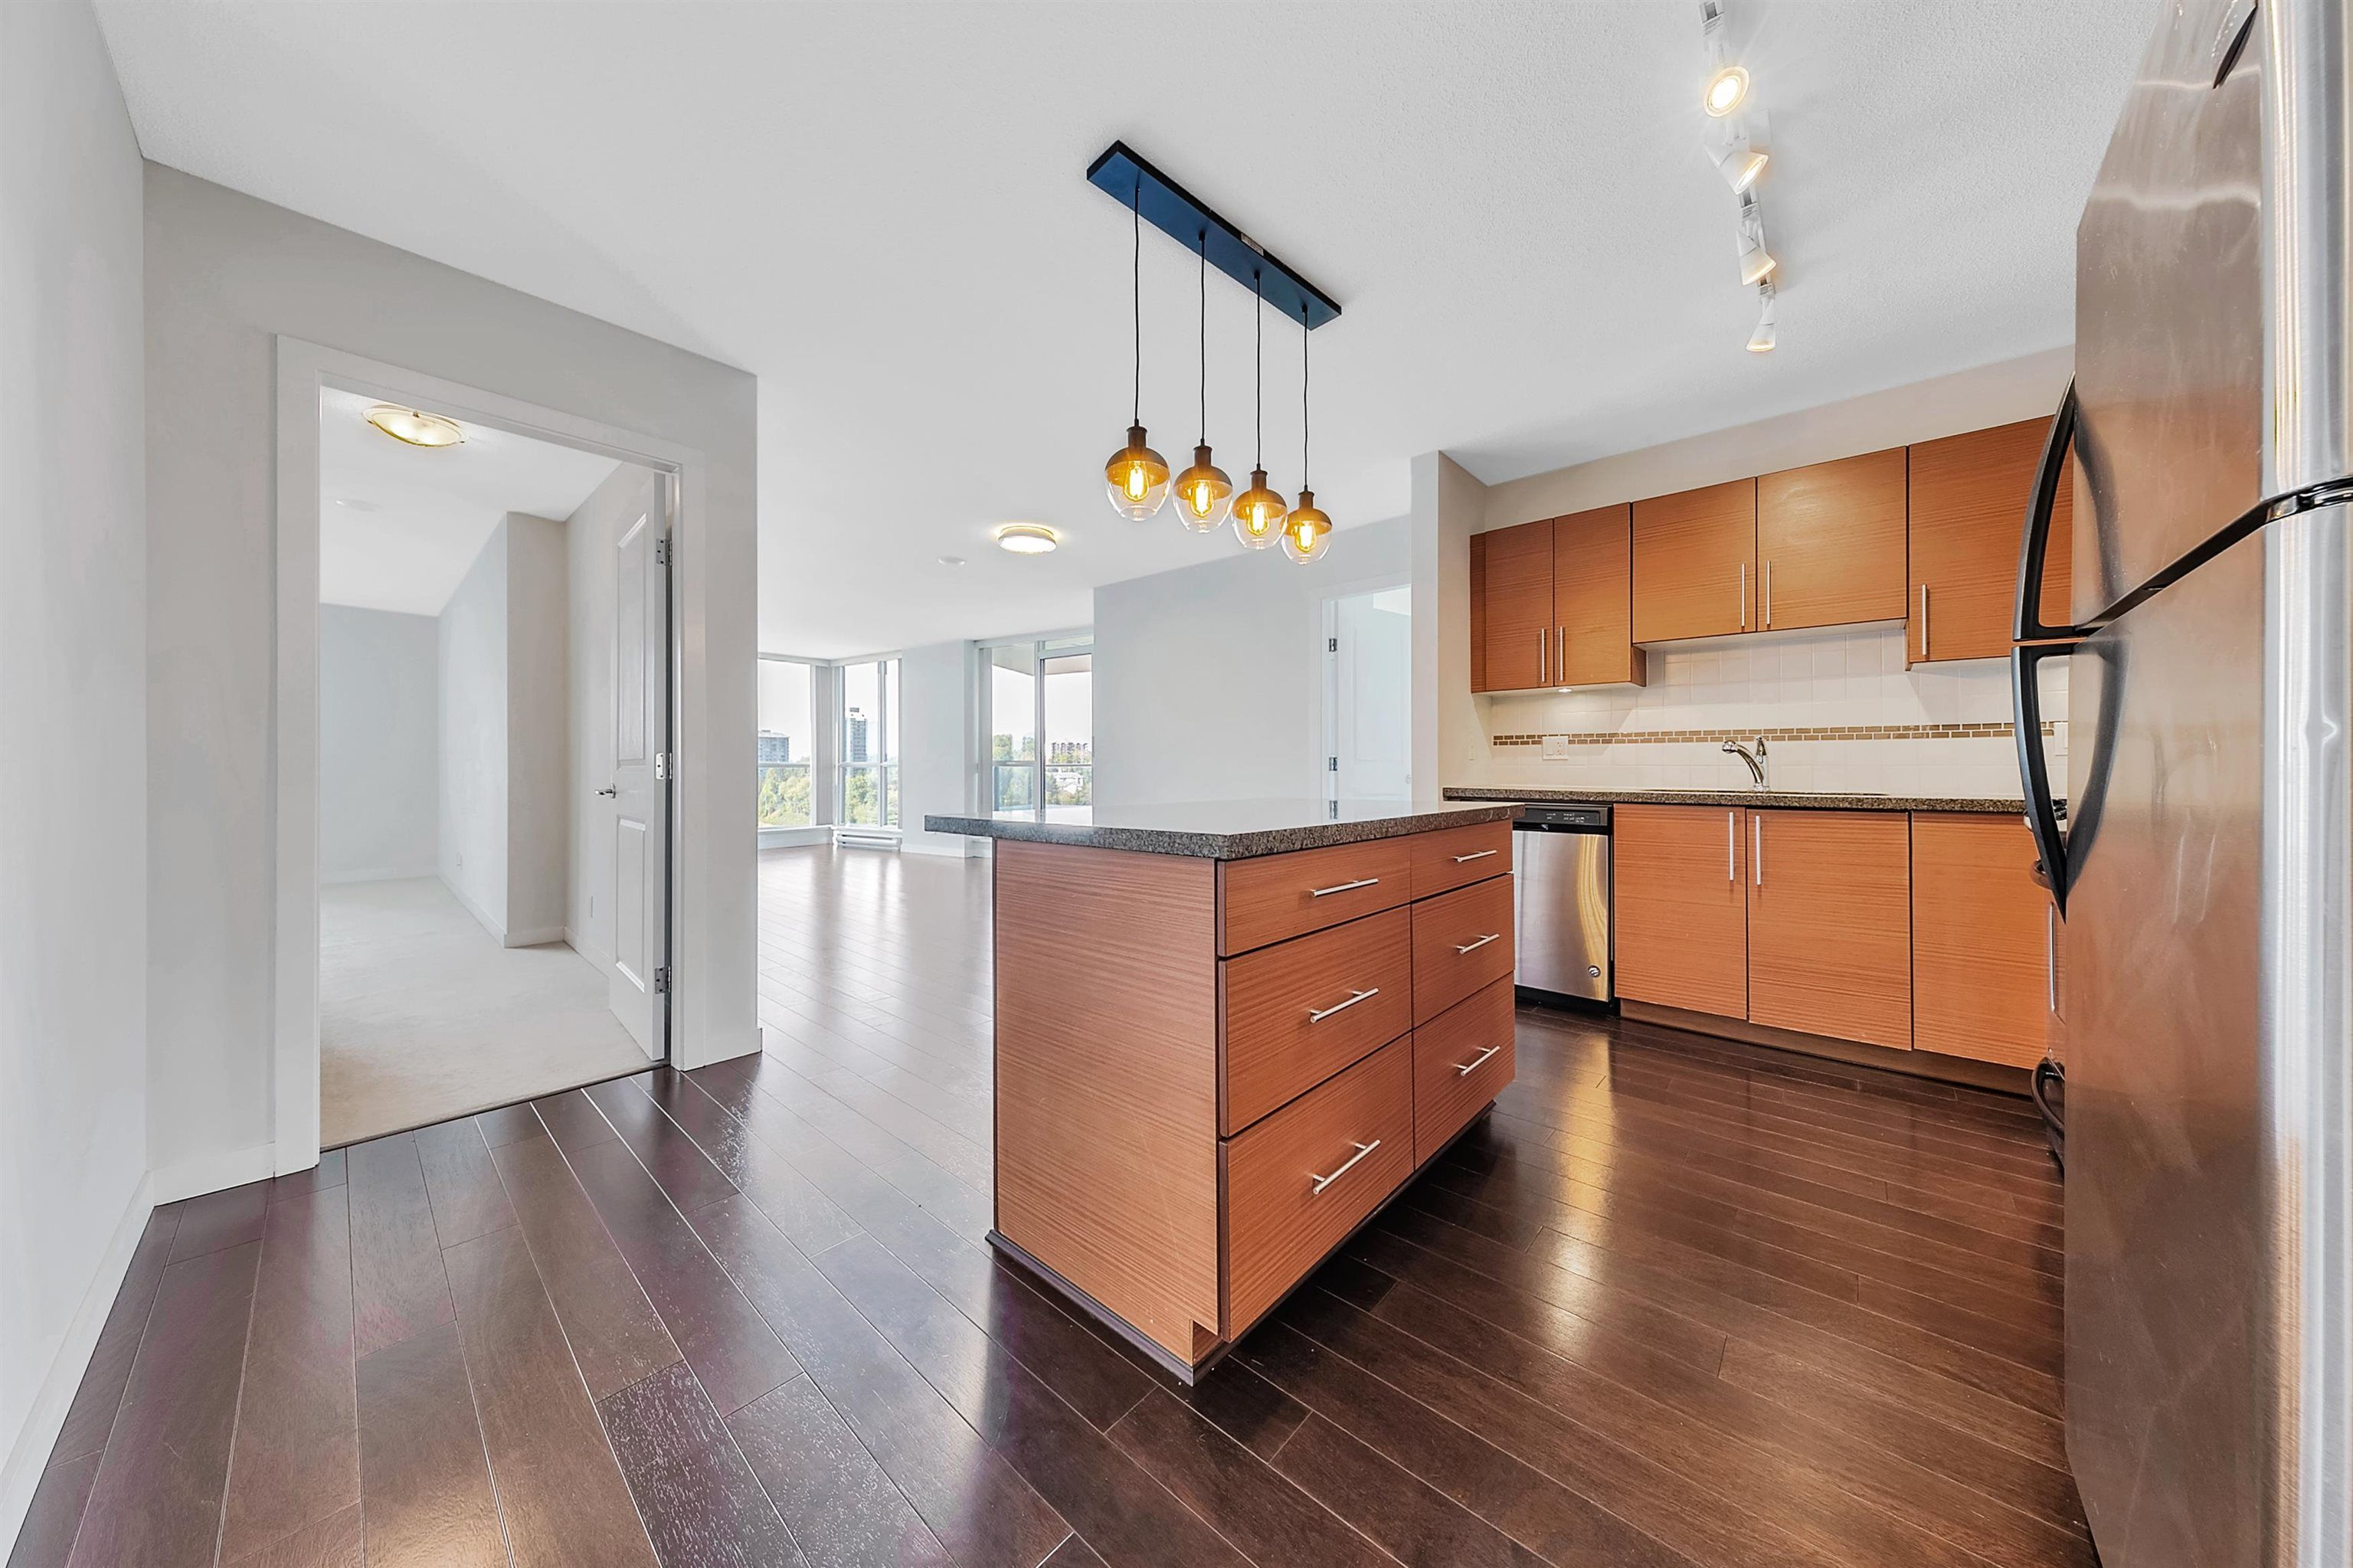 """Main Photo: 1906 5611 GORING Street in Burnaby: Central BN Condo for sale in """"Legacy"""" (Burnaby North)  : MLS®# R2621249"""